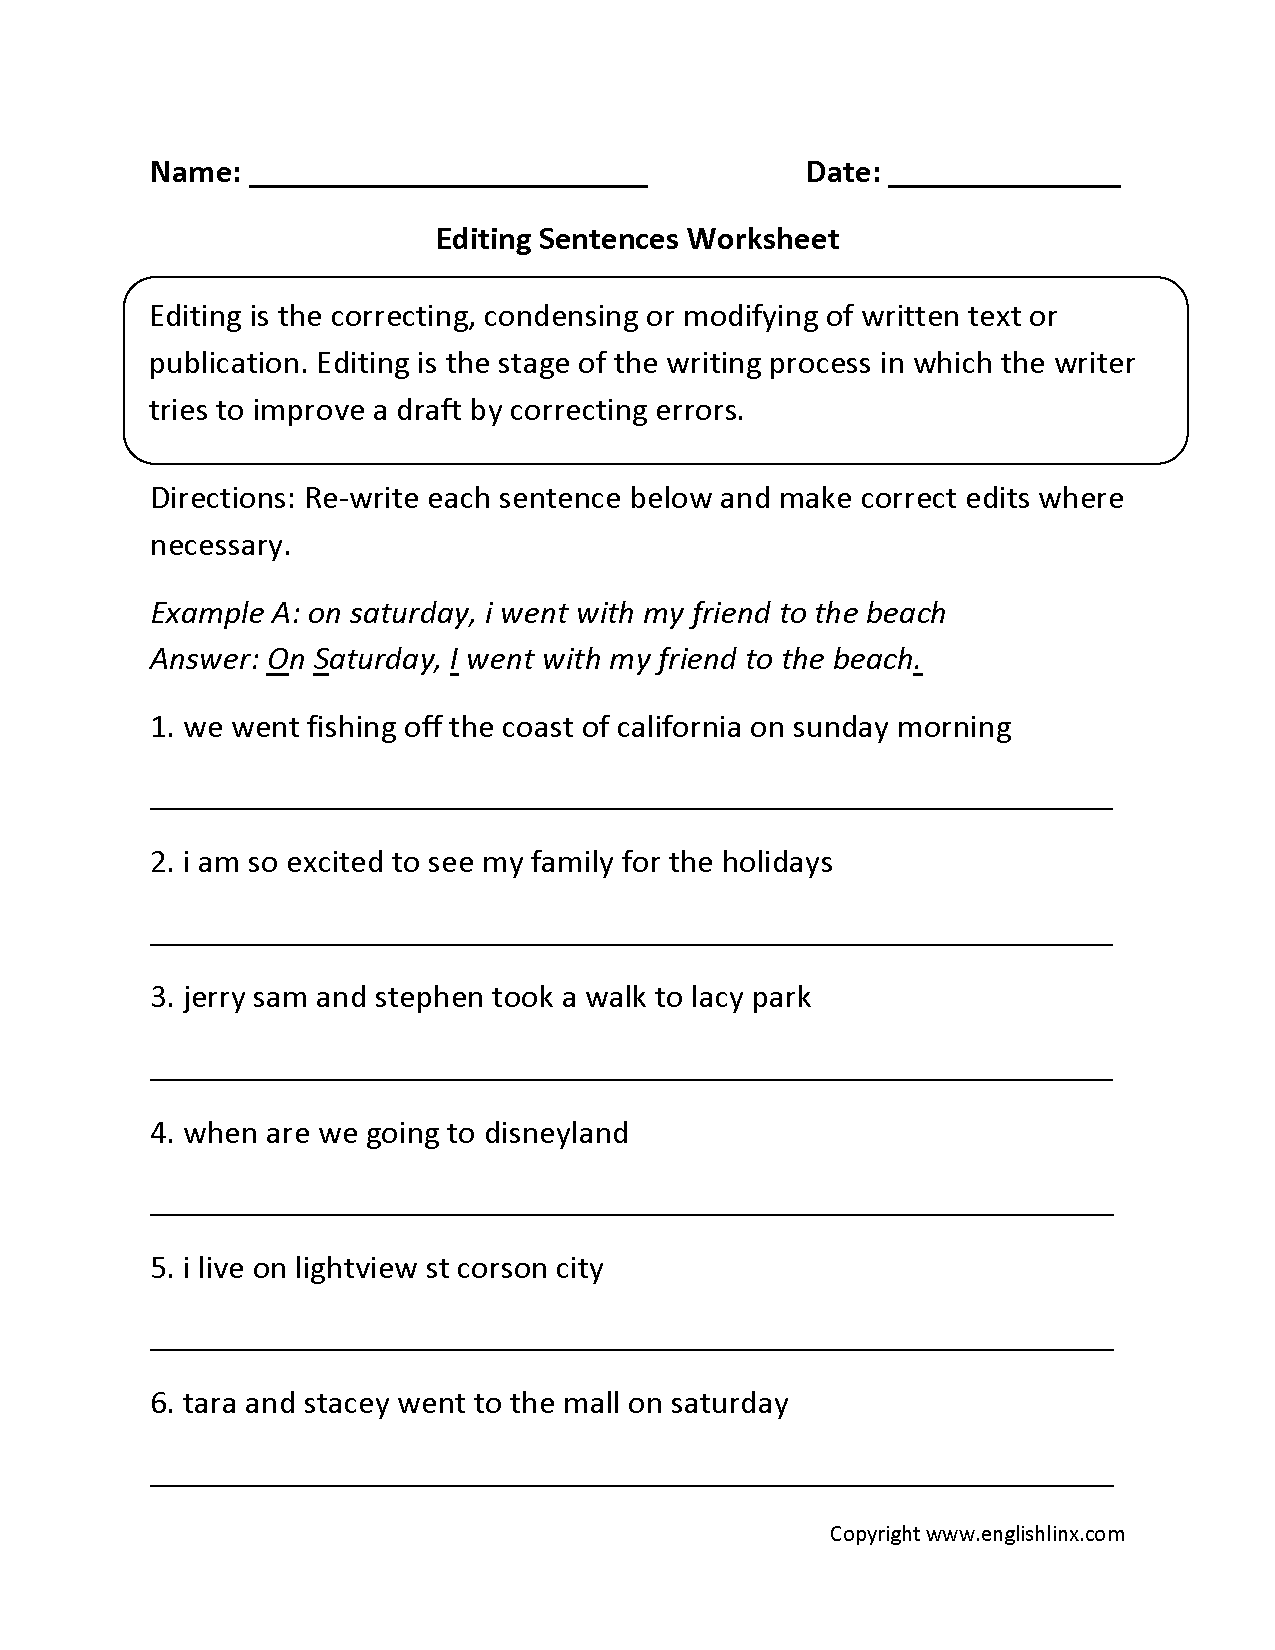 Worksheets Writing Worksheets For 6th Grade writing worksheets editing worksheets